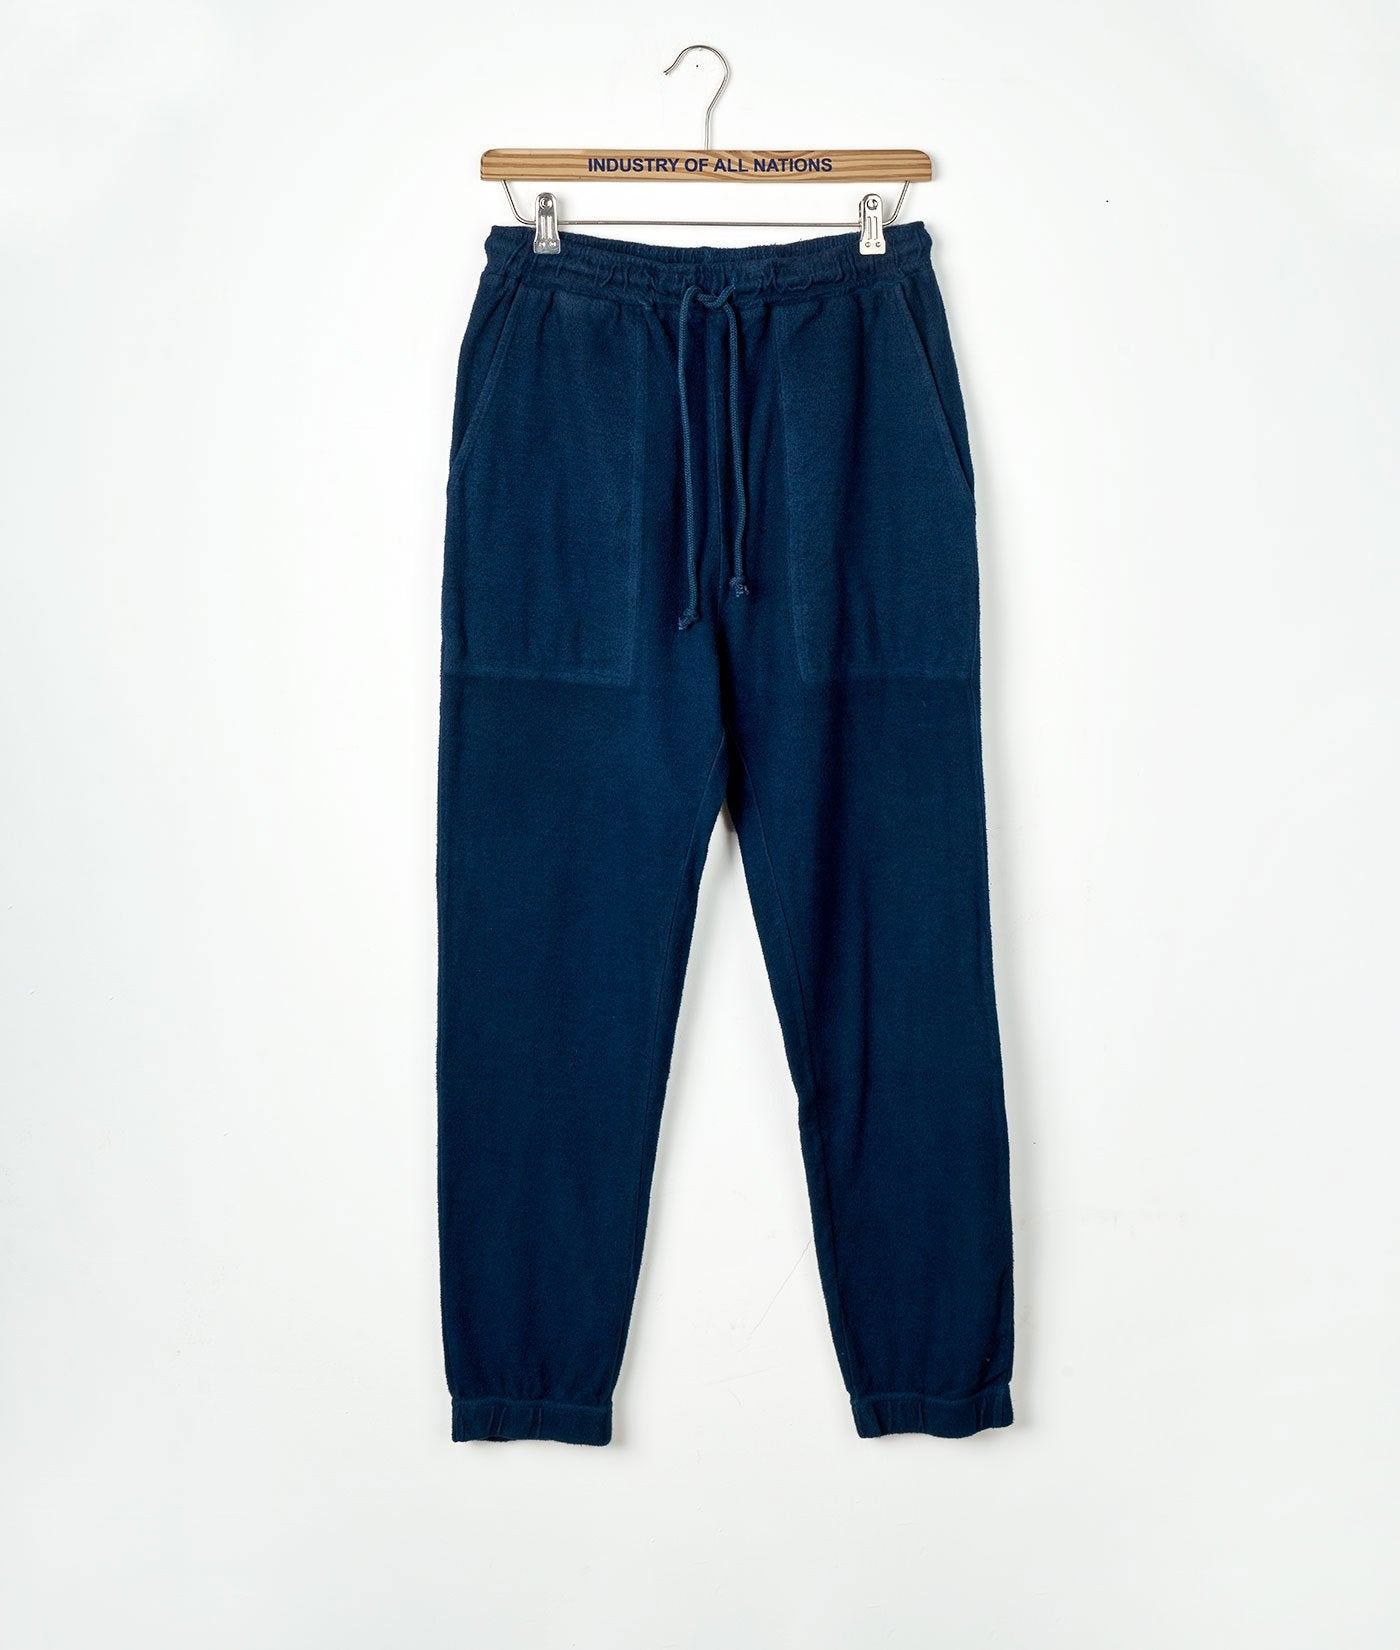 Industry of All Nations Organic Cotton Fleece SweatpantsIndustry of All Nations Organic Cotton Fleece Sweatpants Indigo 12